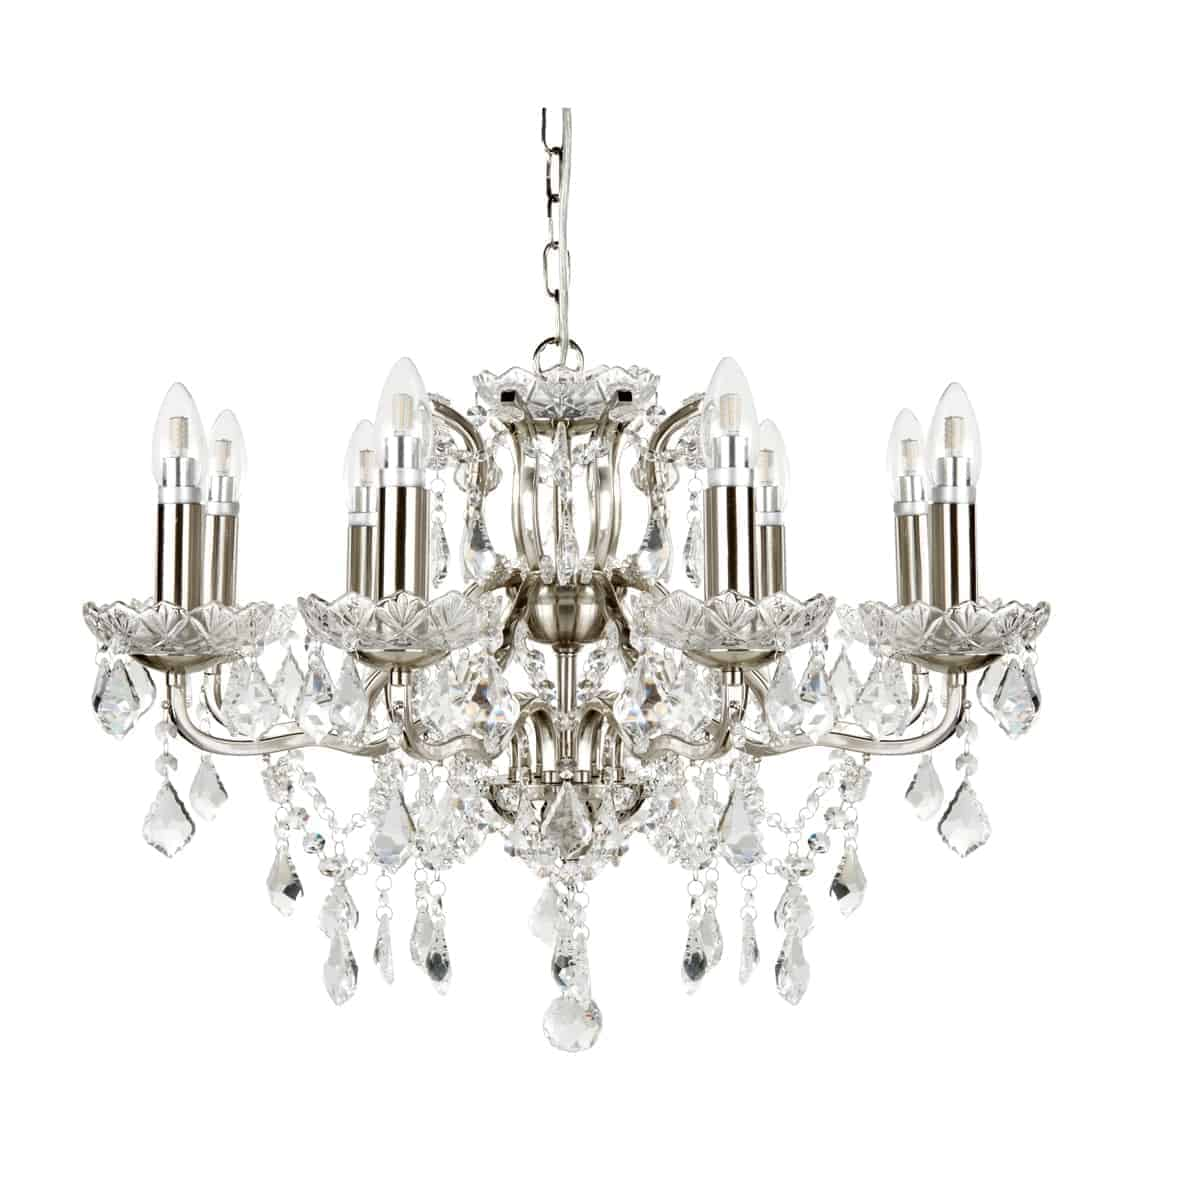 Searchlight 8738-8Ss 8 Light Satin Silver Chandelier With Clear Crystal Drops